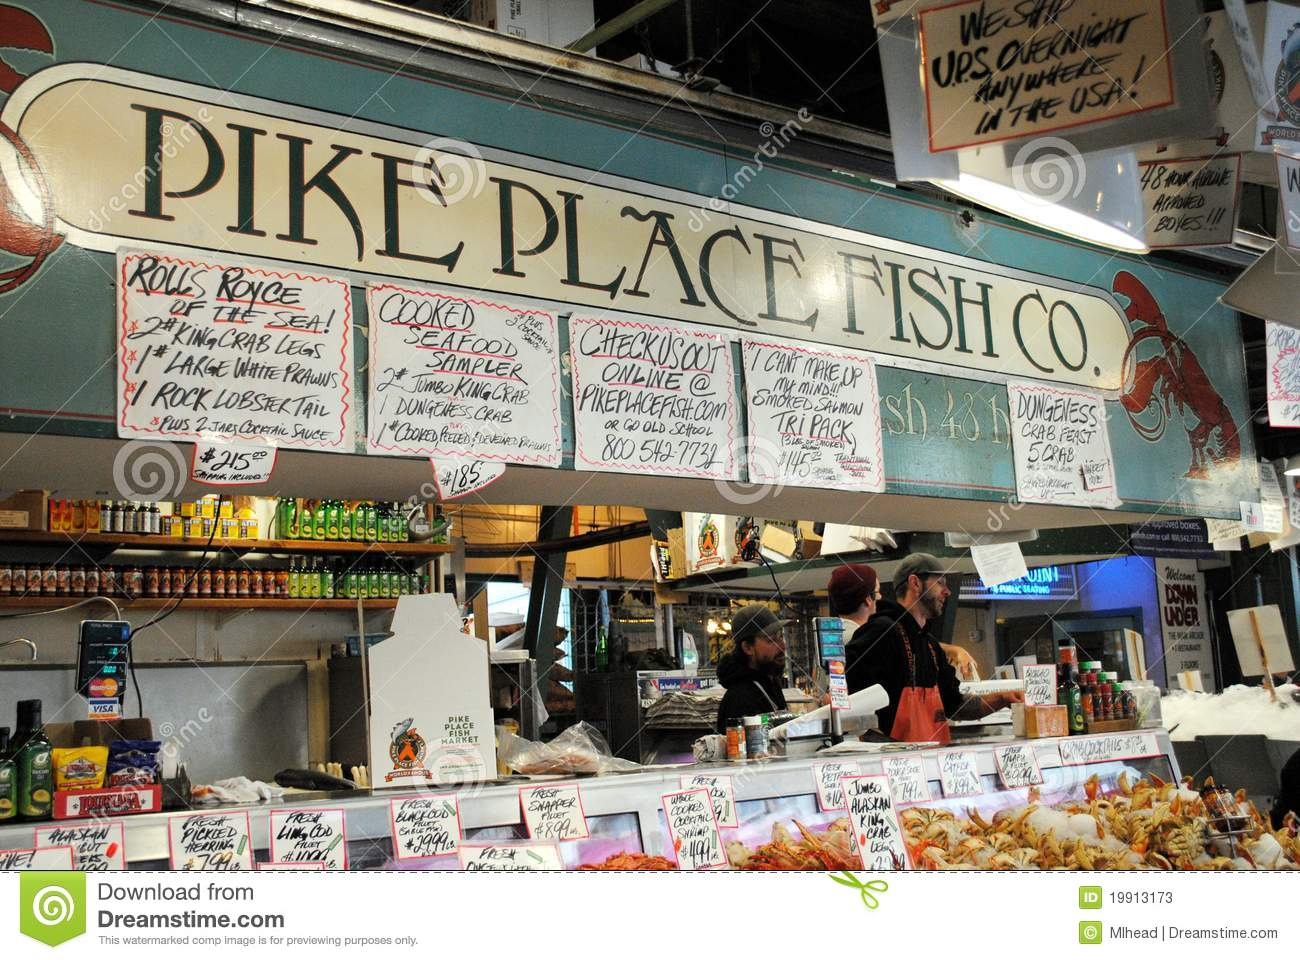 Pike place fish company editorial stock photo image for Famous fish market in seattle